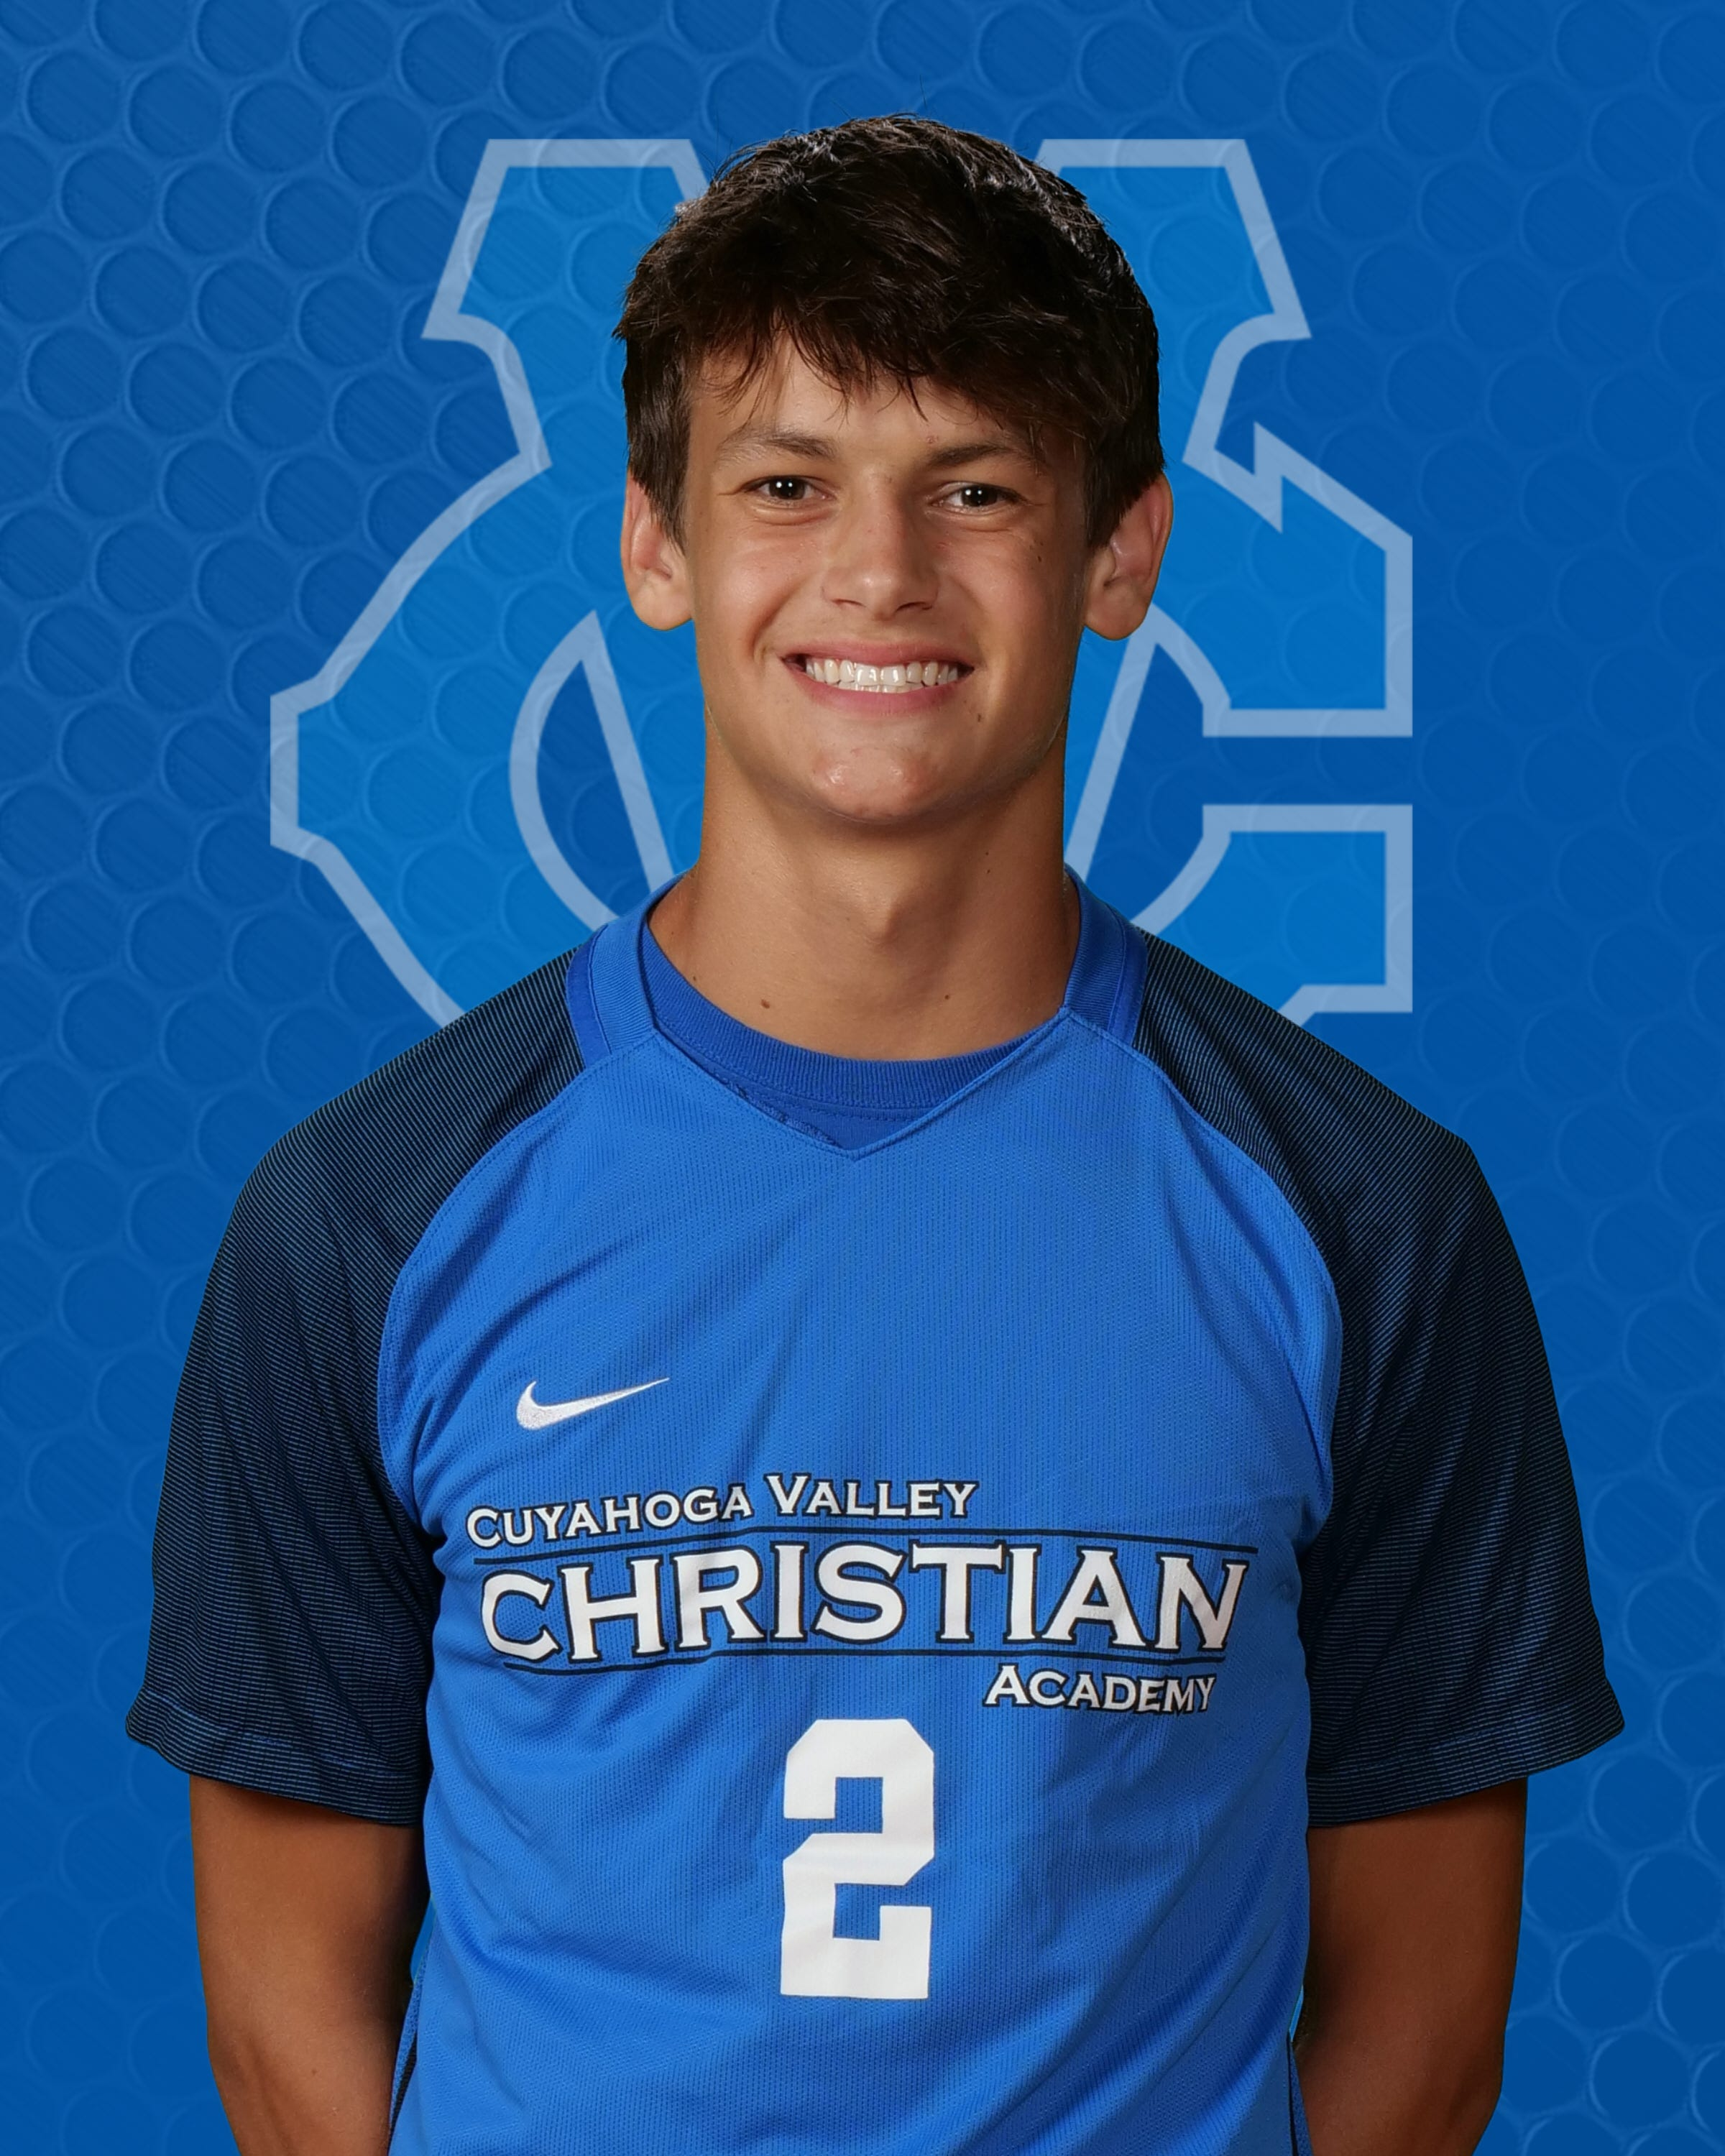 Cuyahoga Valley Christian Academy's Aidan Eck was a first-team All-Ohio selection in Division II last season after scoring 13 goals and posting four assists.